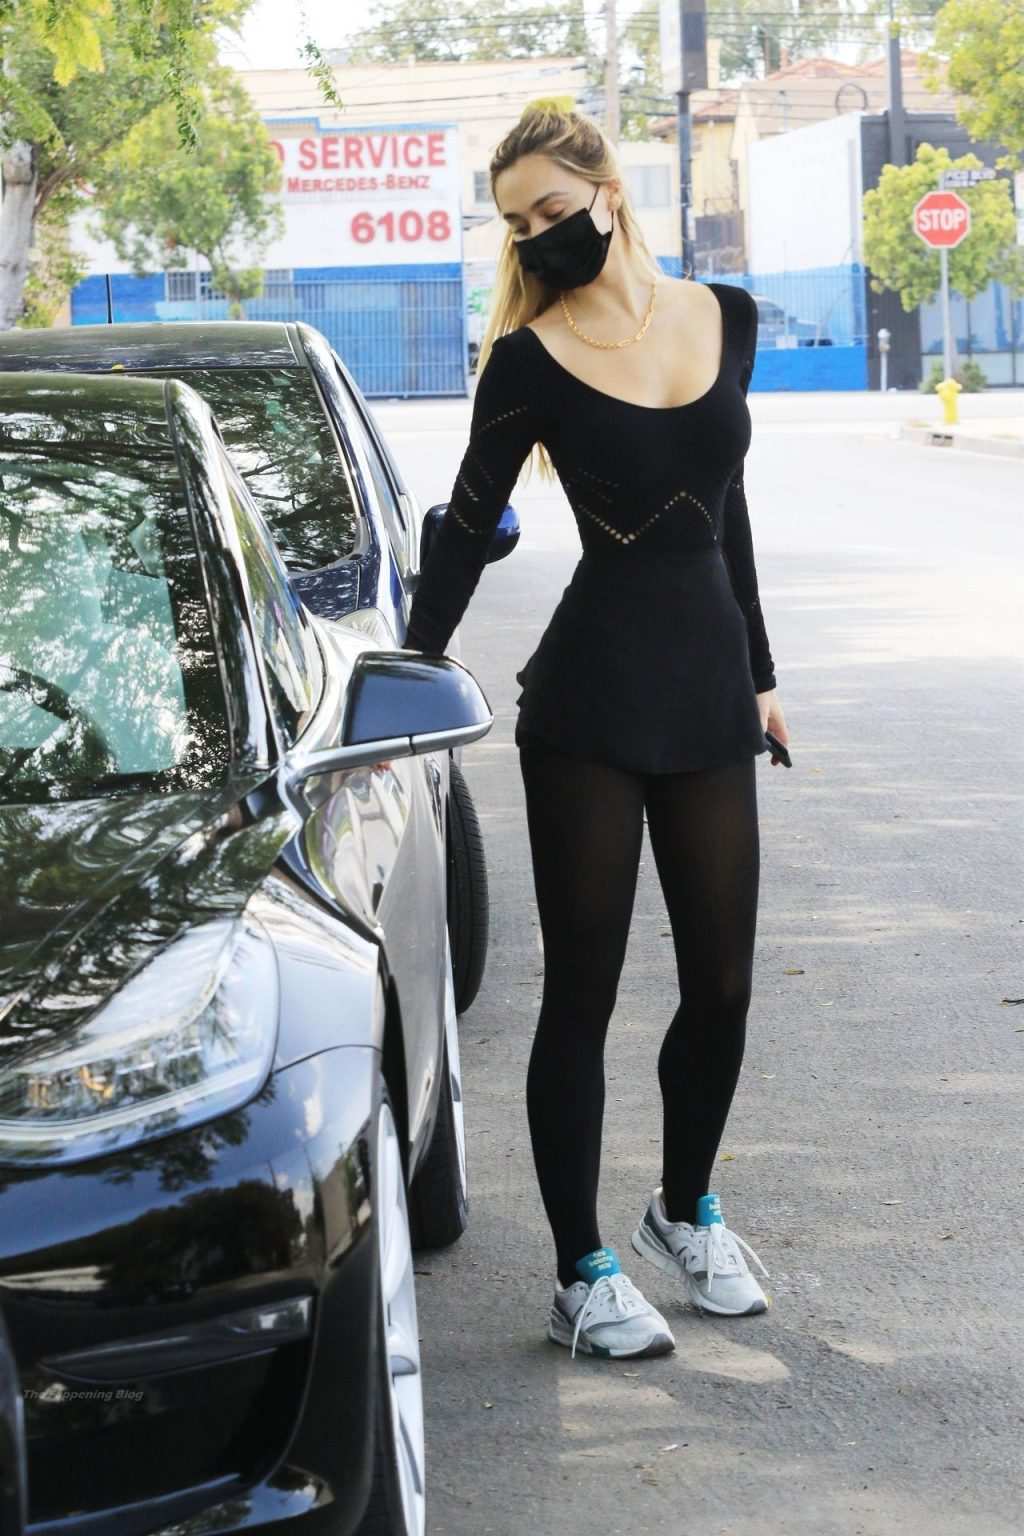 Alexis Ren is Flawless Getting in a Ballet Session on Easter (53 Photos)